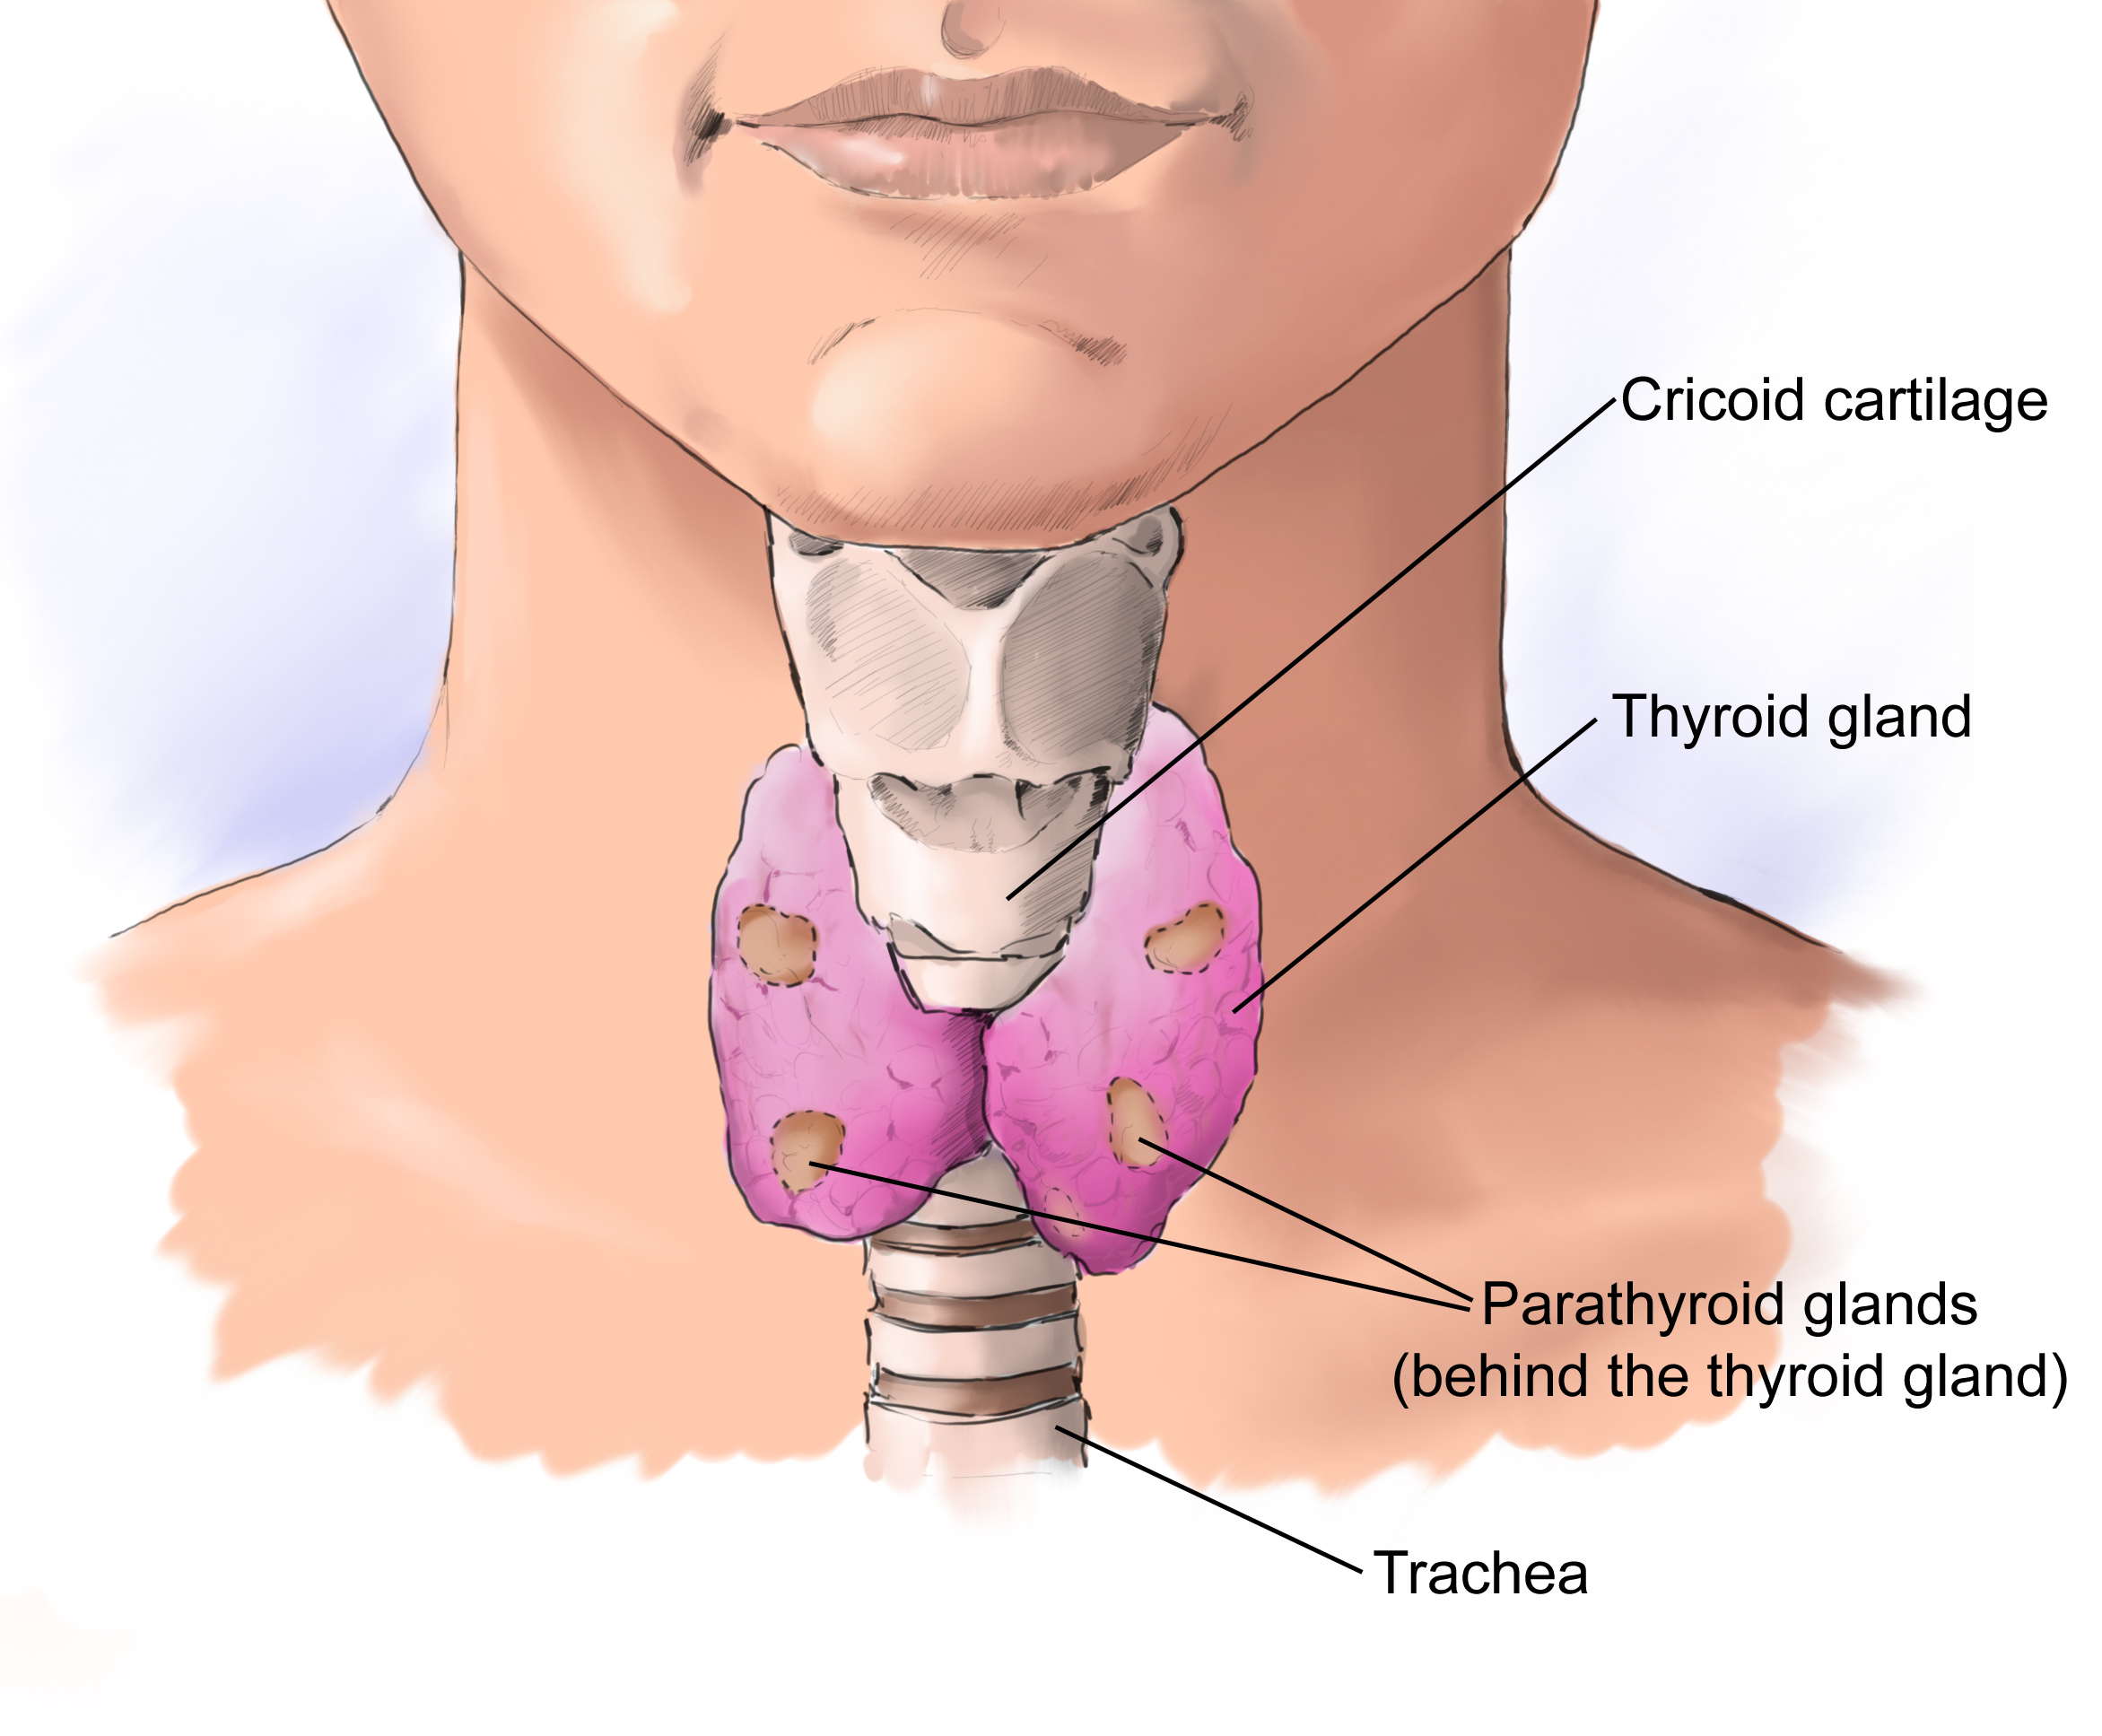 Thyroid Surgeon Adelaide Thyroid Lumps Consultation By Dr Andrew Kiu Breast Cancer Endocrine And General Surgery Dr Andrew Kiu